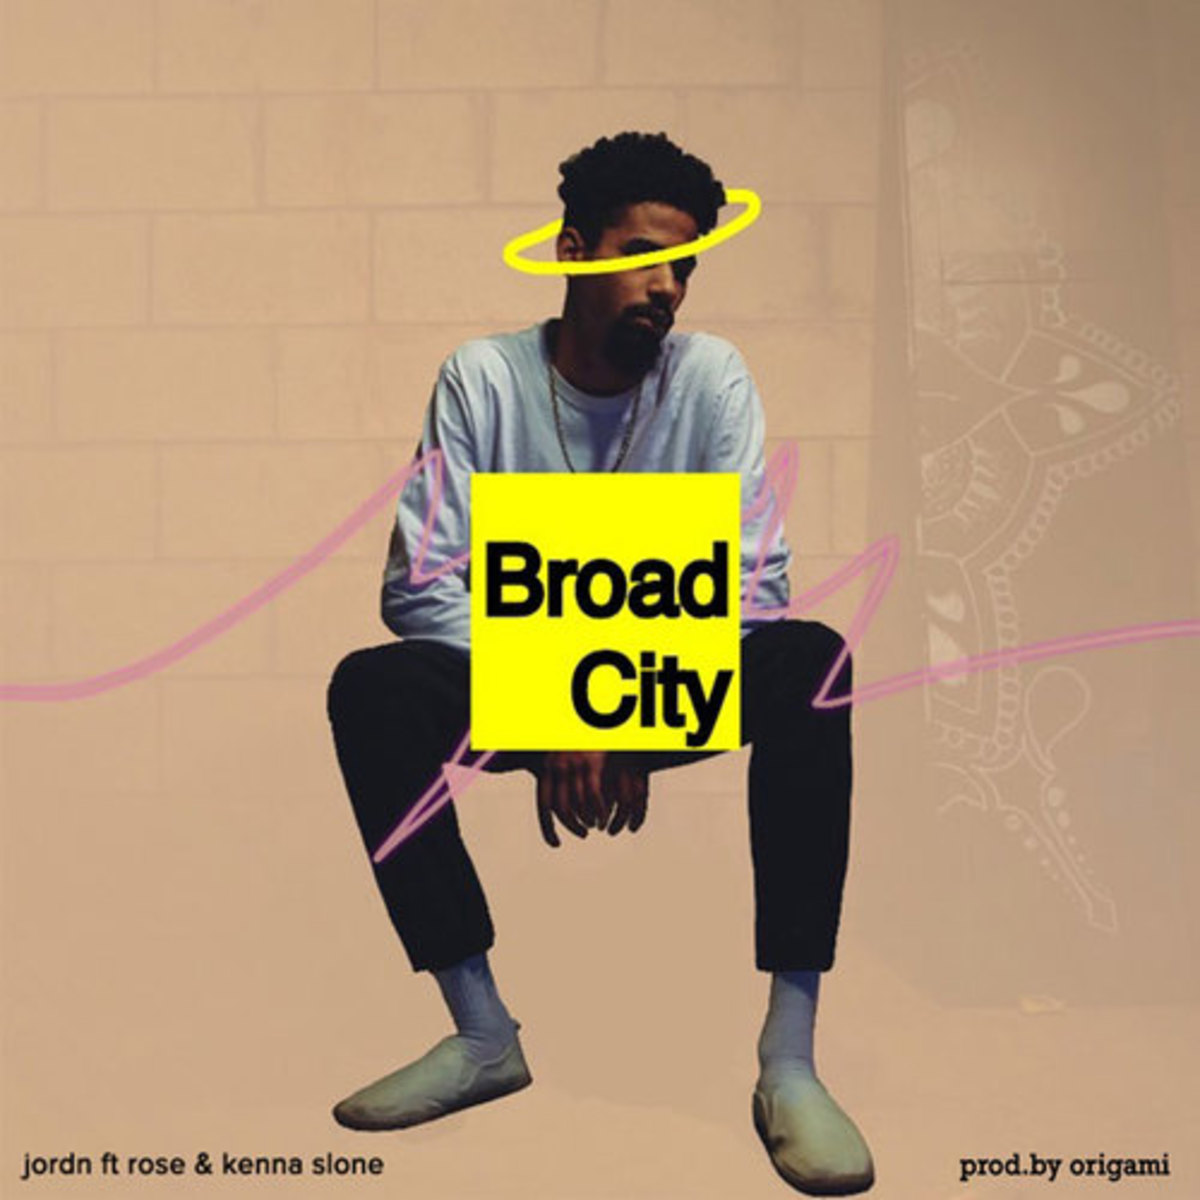 jordn-broad-city.jpg